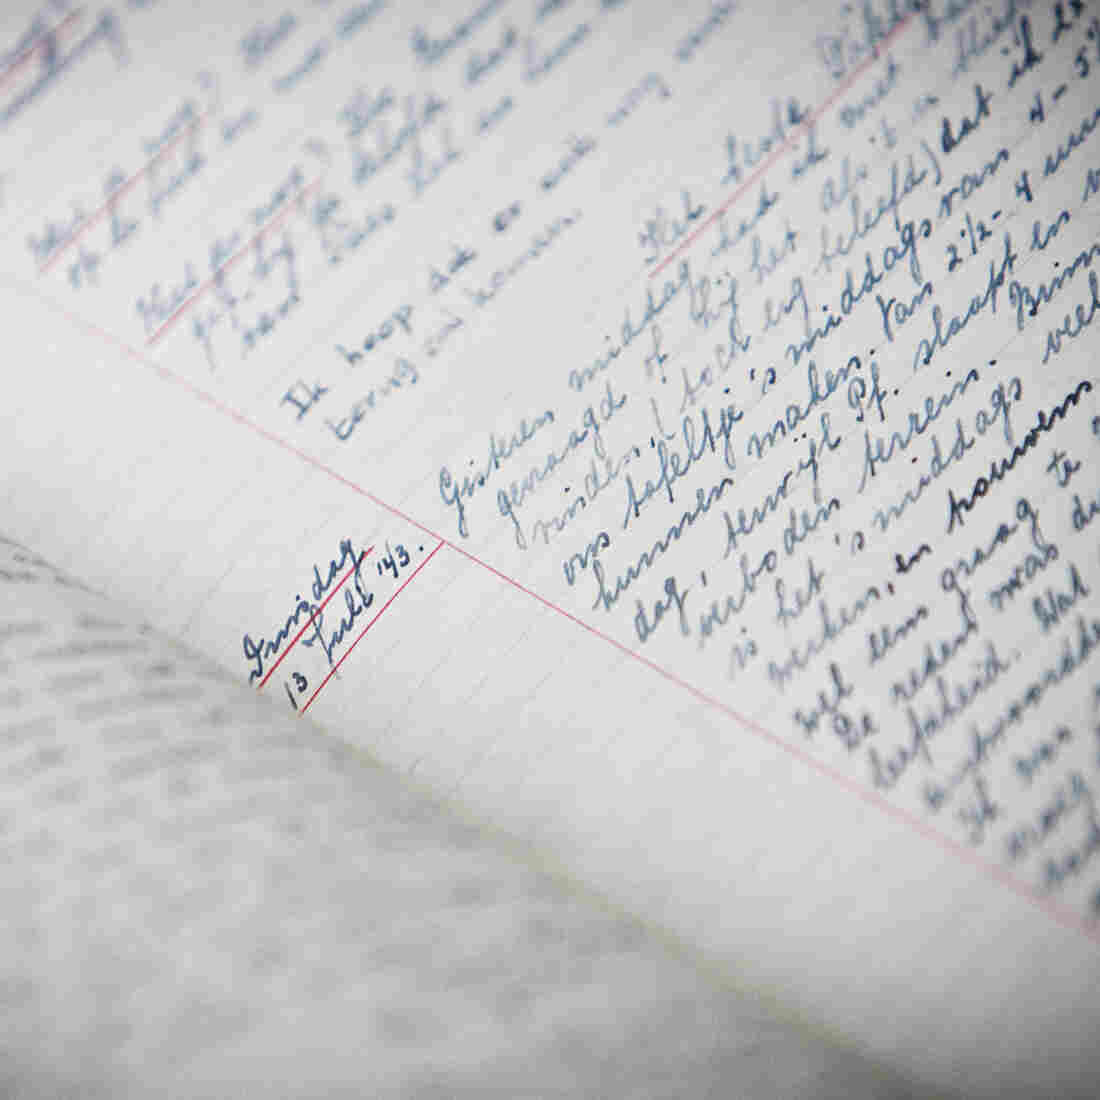 'Mein Kampf' Enters Public Domain; Arguably, Anne Frank's Diary May, Too